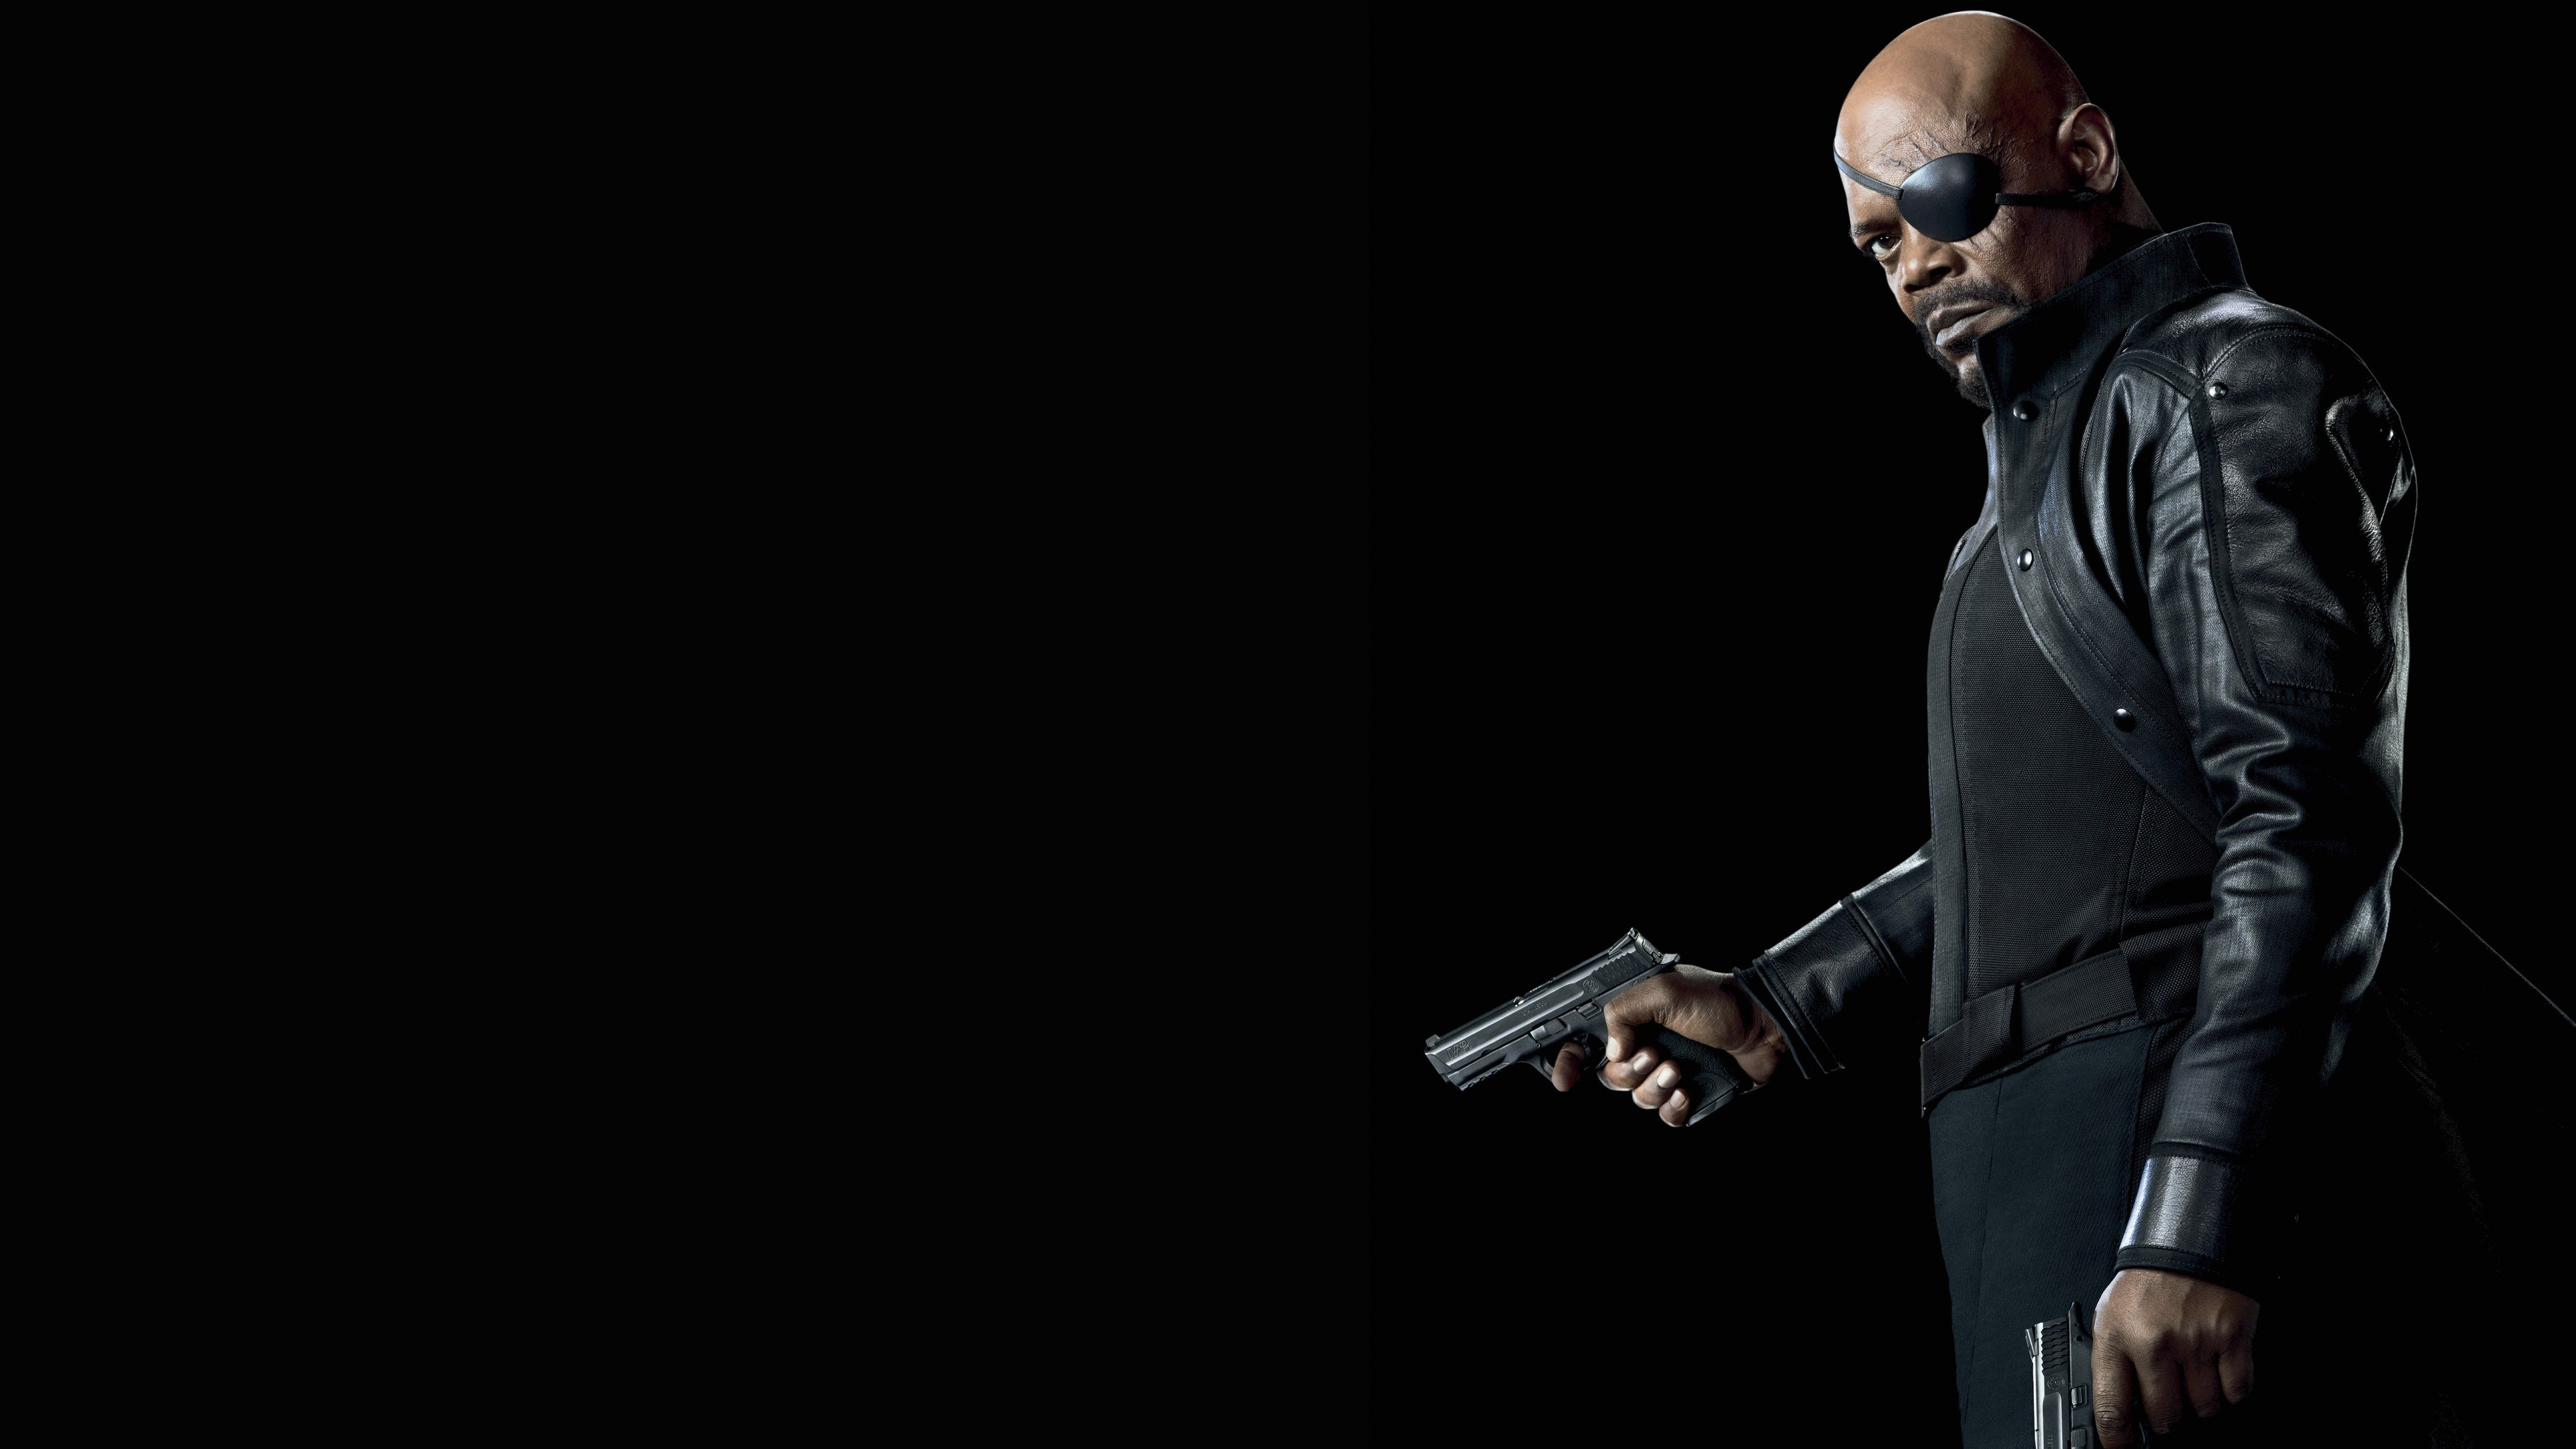 nick fury captain marvel avengers hd wallpaper